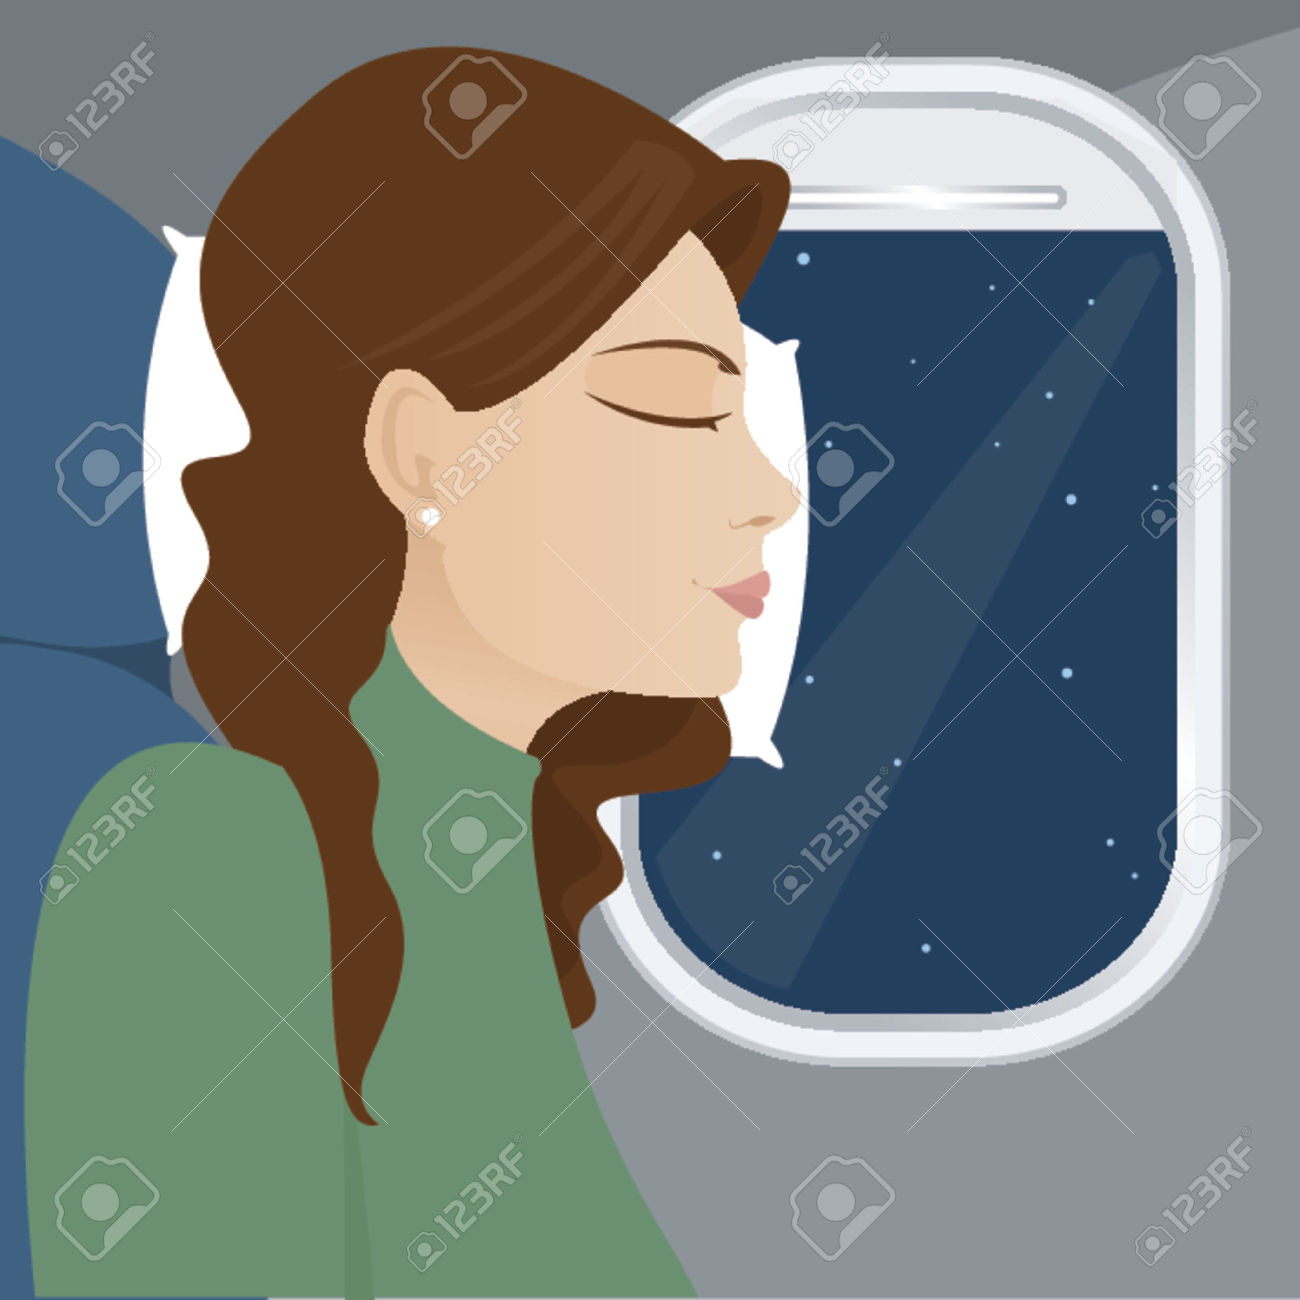 Woman Leans Against The Airplane Window, Sleeping During Flight.